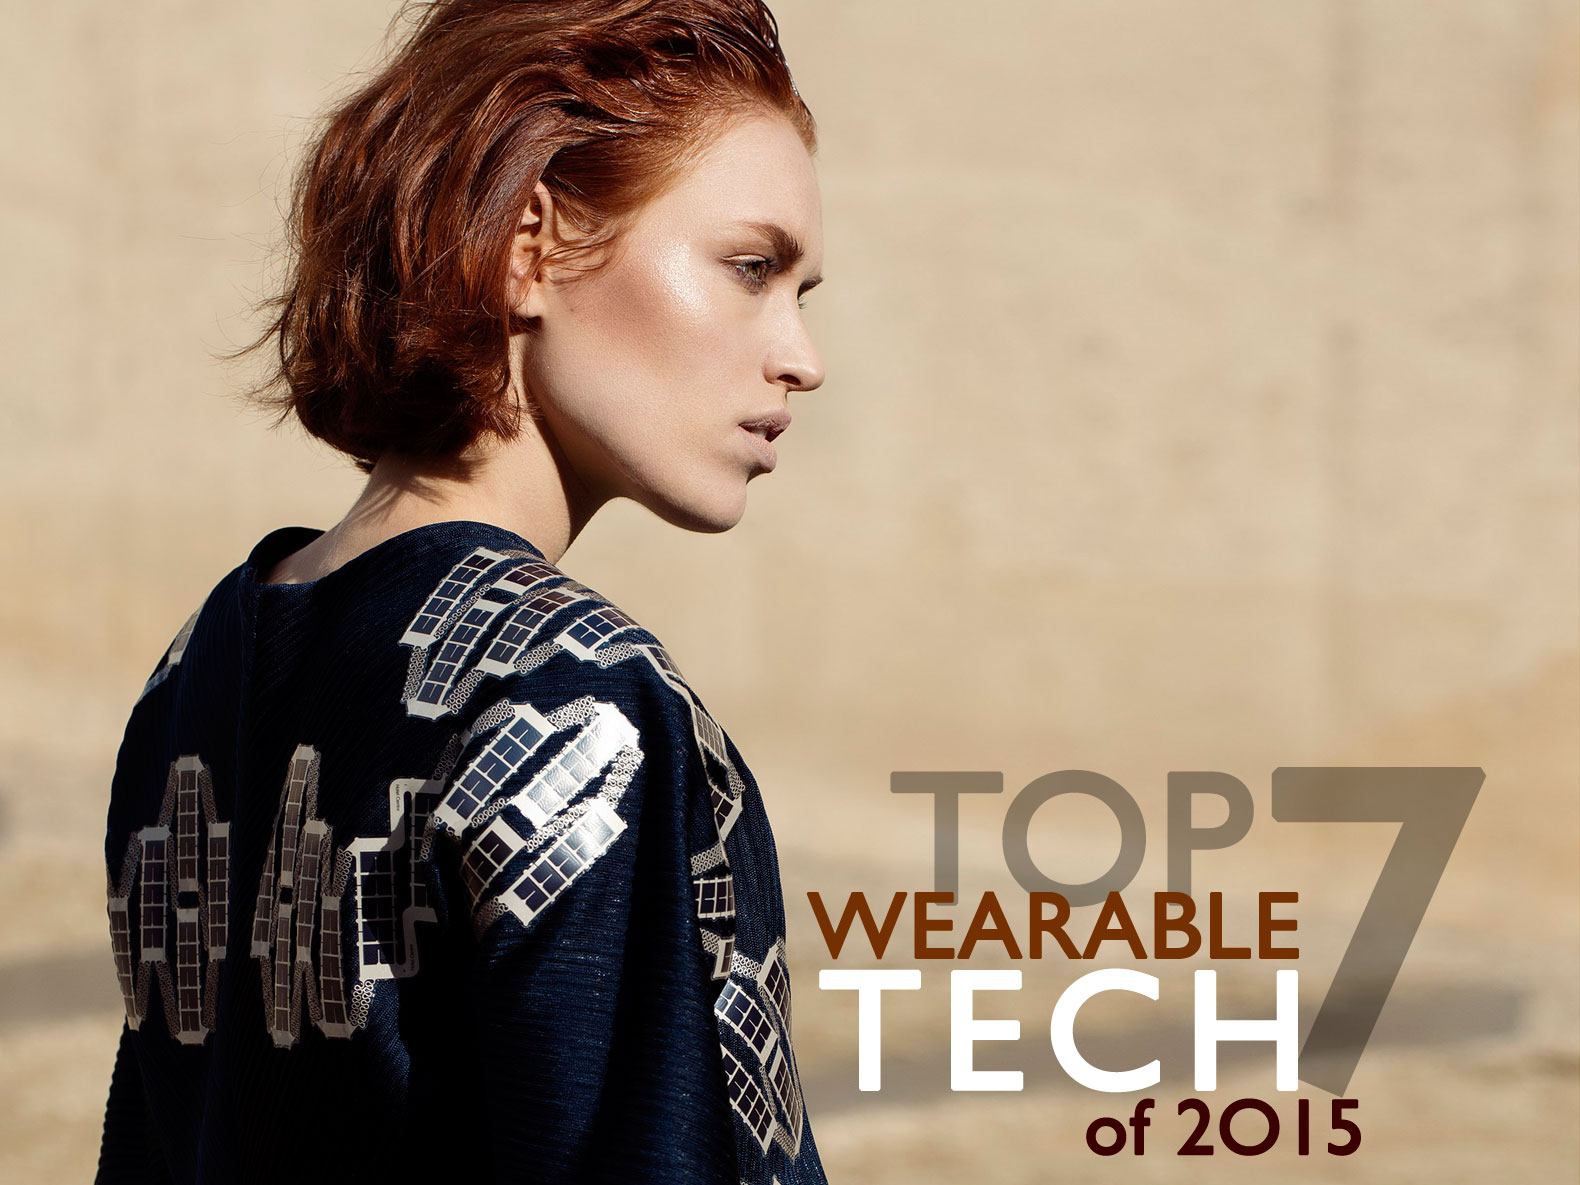 The top 7 wearable tech innovations of 2015